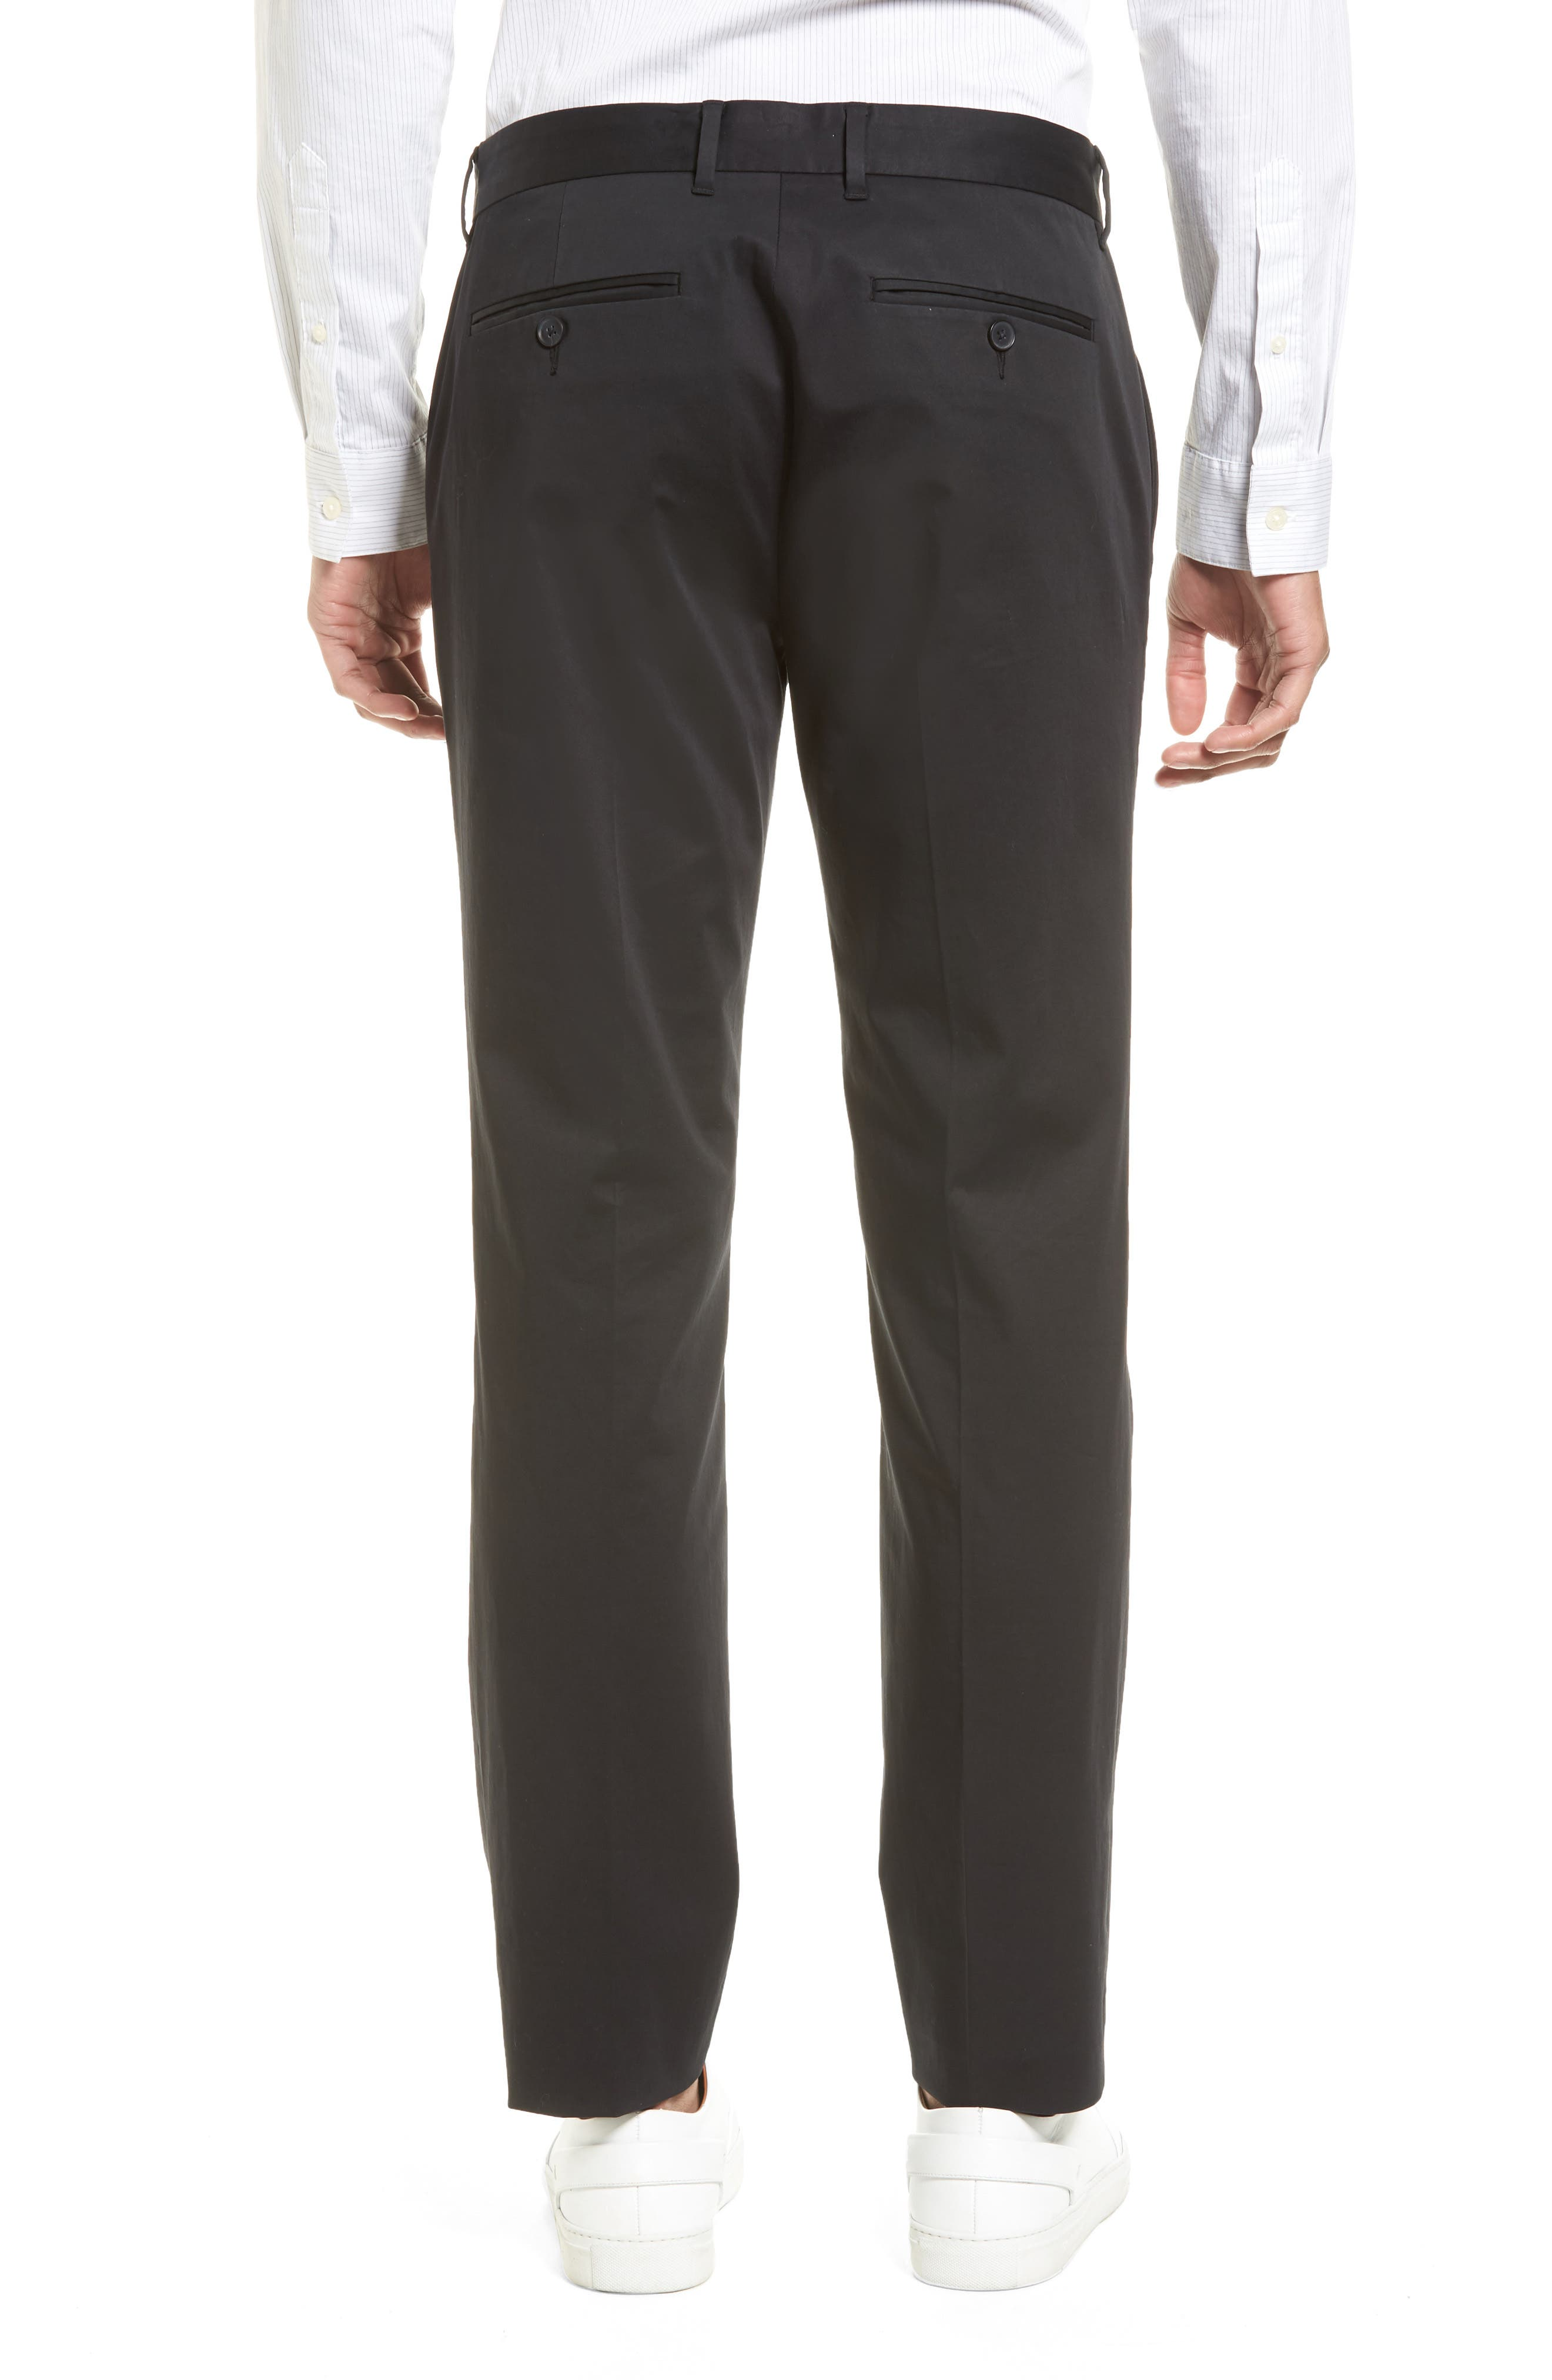 Officer Flat Front Chino Pants,                             Alternate thumbnail 2, color,                             001